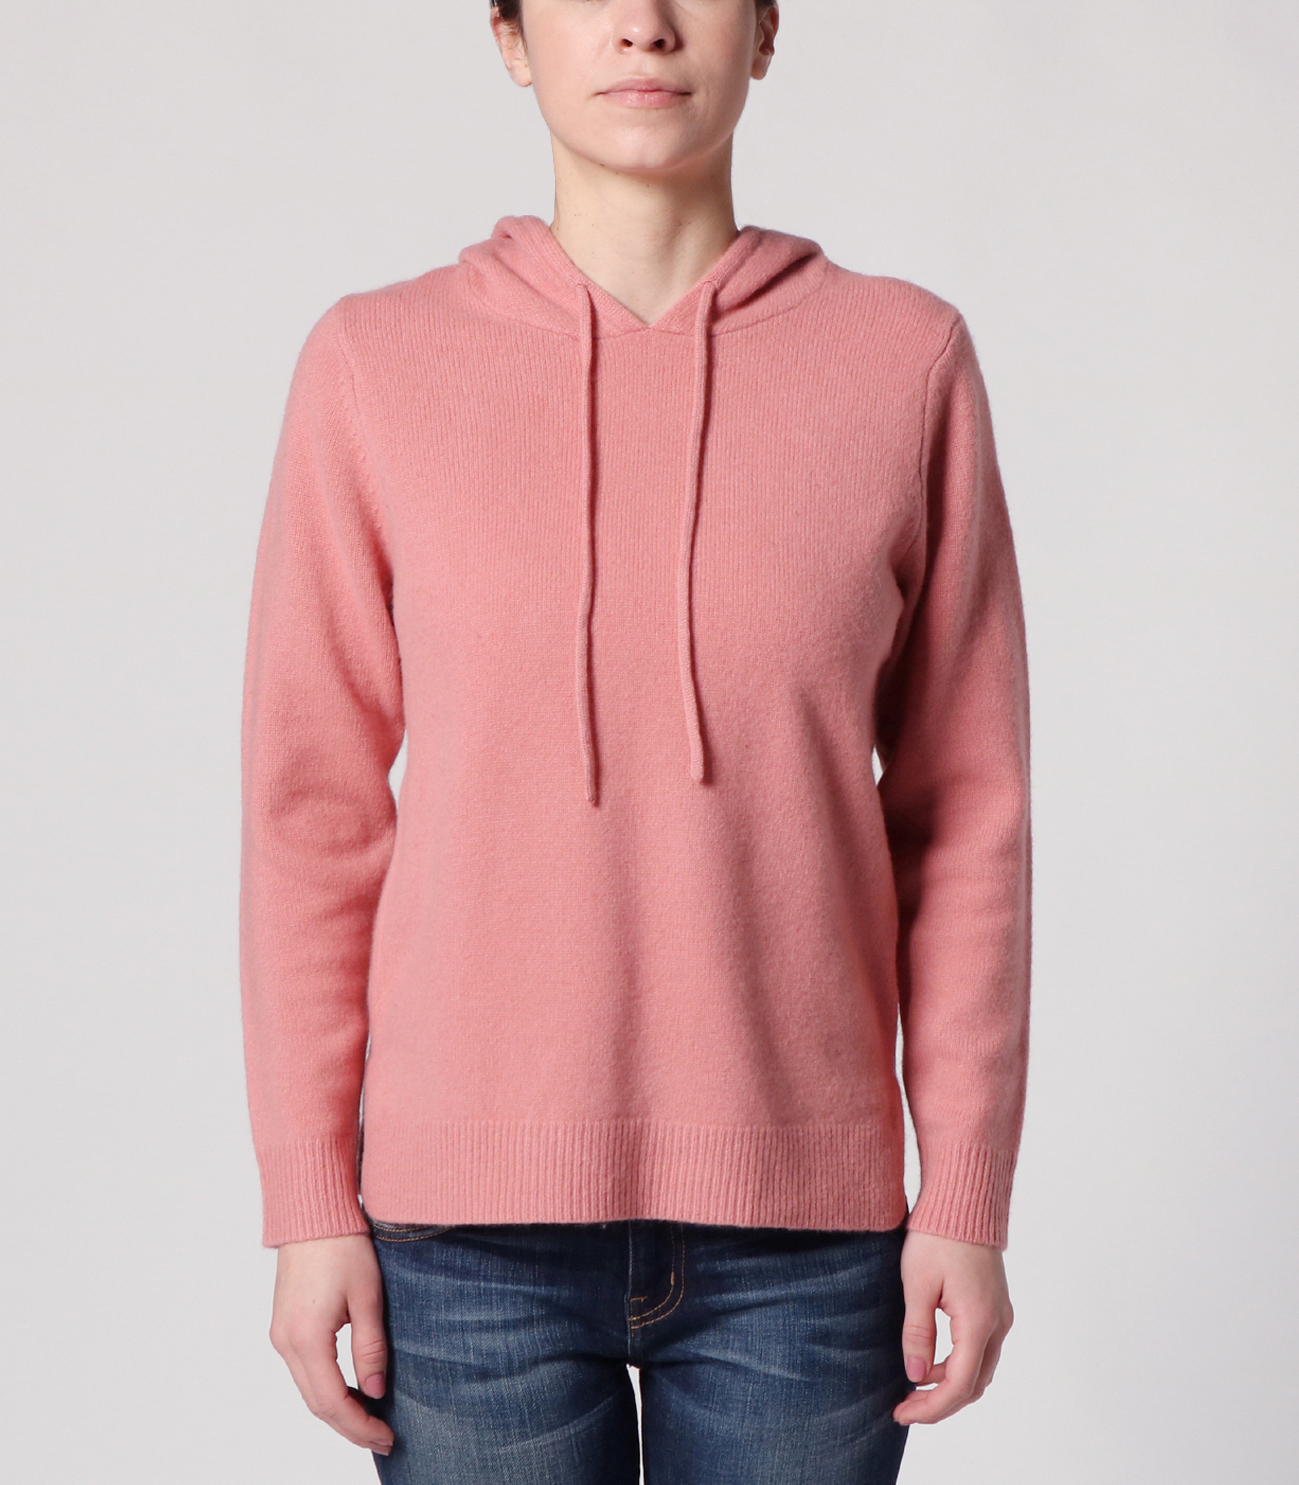 lt smooth wool hooded pullover 詳細画像 dusty rose 2